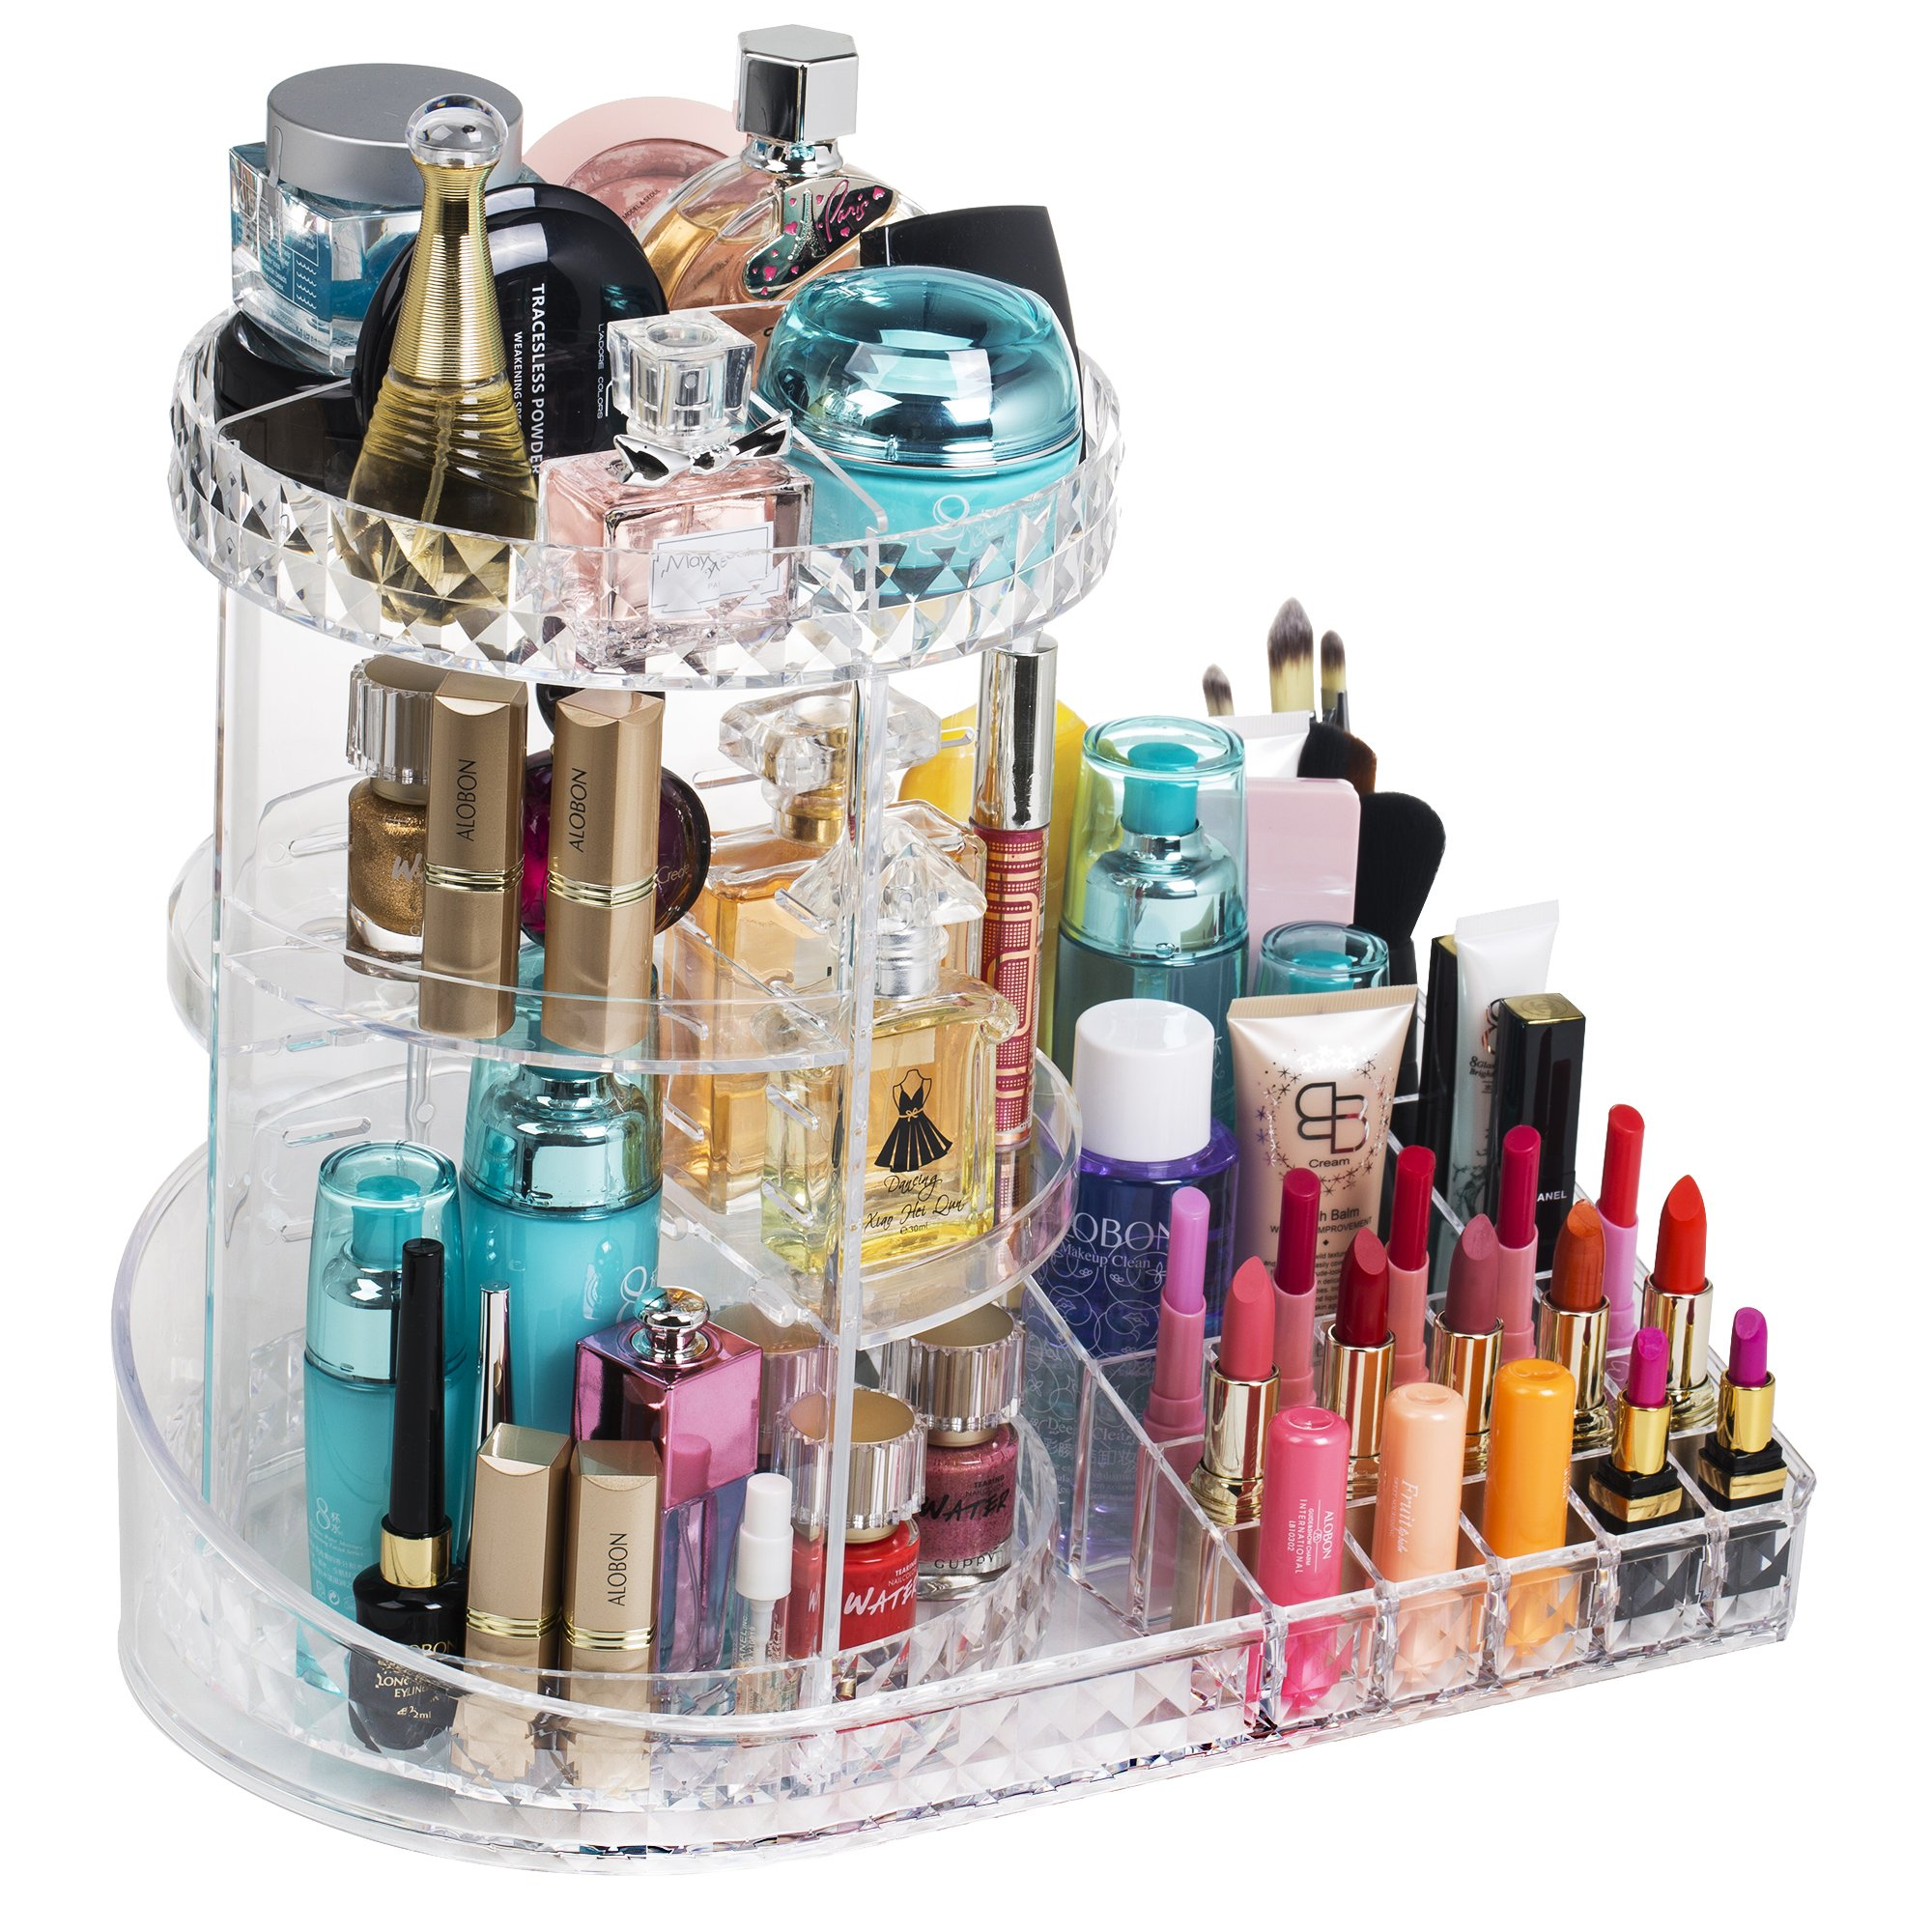 Readaeer 360 Degree Rotating Adjustable Makeup Organizer Cosmetics Lipsticks Perfumes Storage Tray Box (Clear) by Readaeer